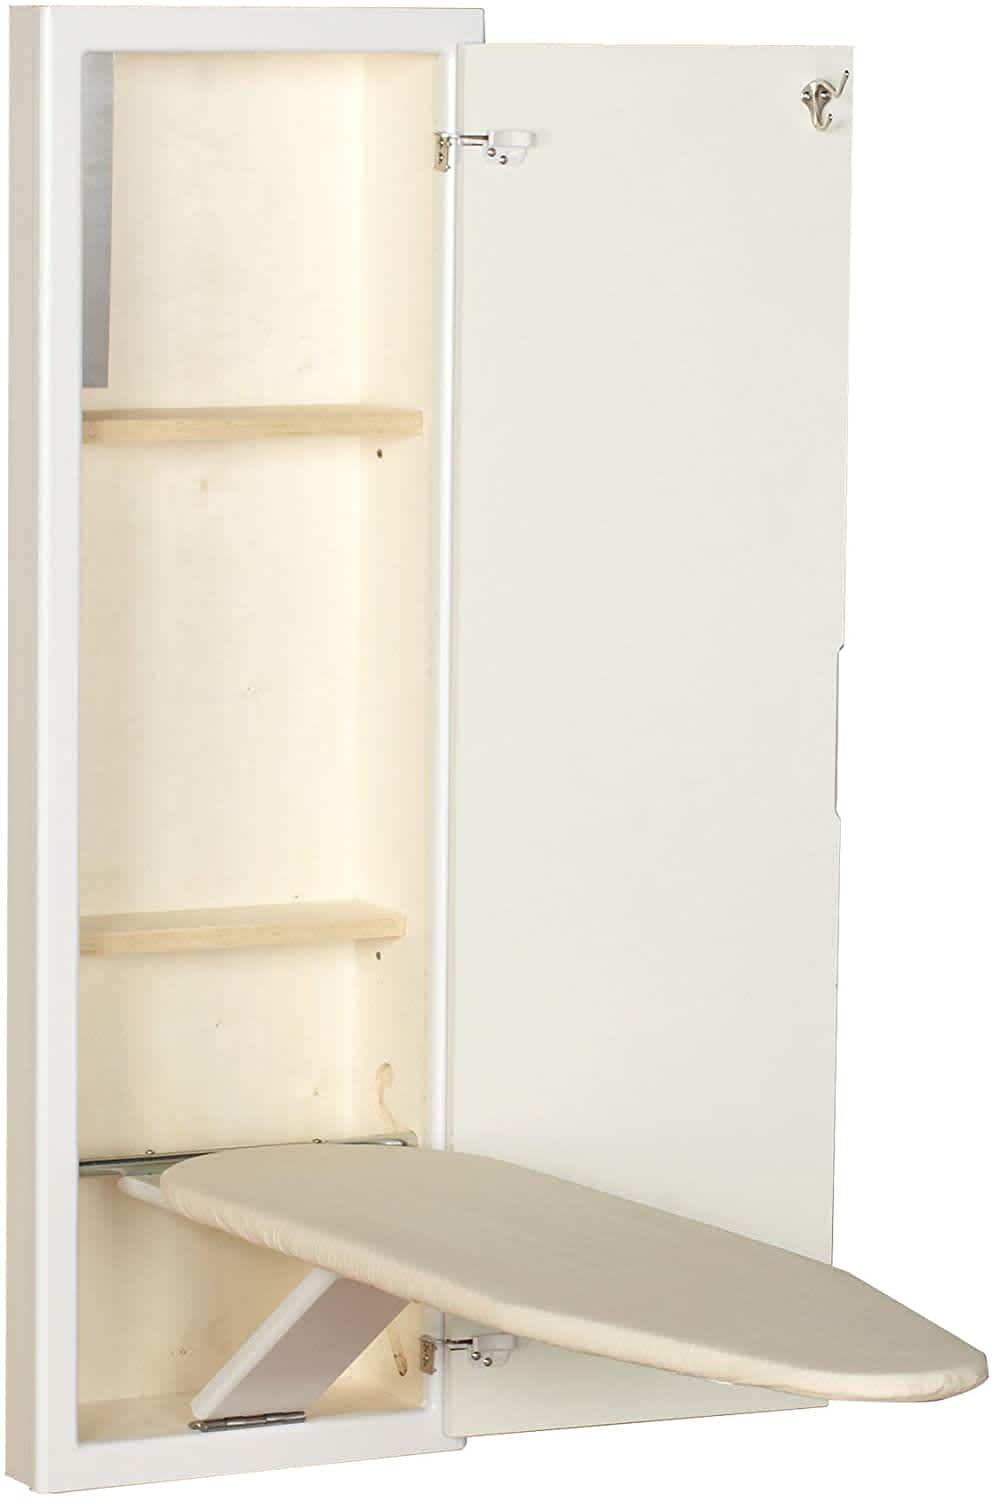 Household Essentials StowAway In-Wall Ironing Board Cabinet